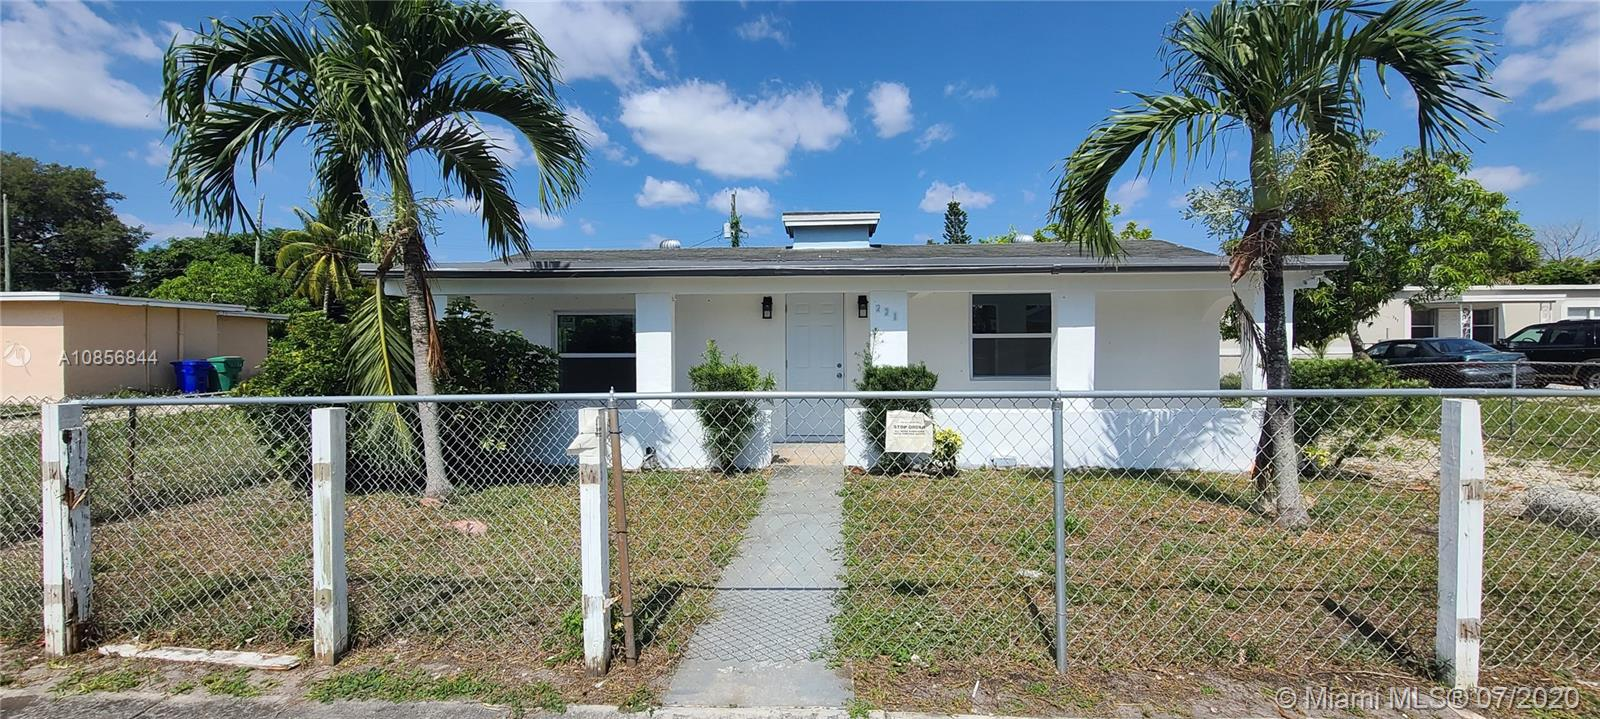 221 NW 28th Way  For Sale A10856844, FL